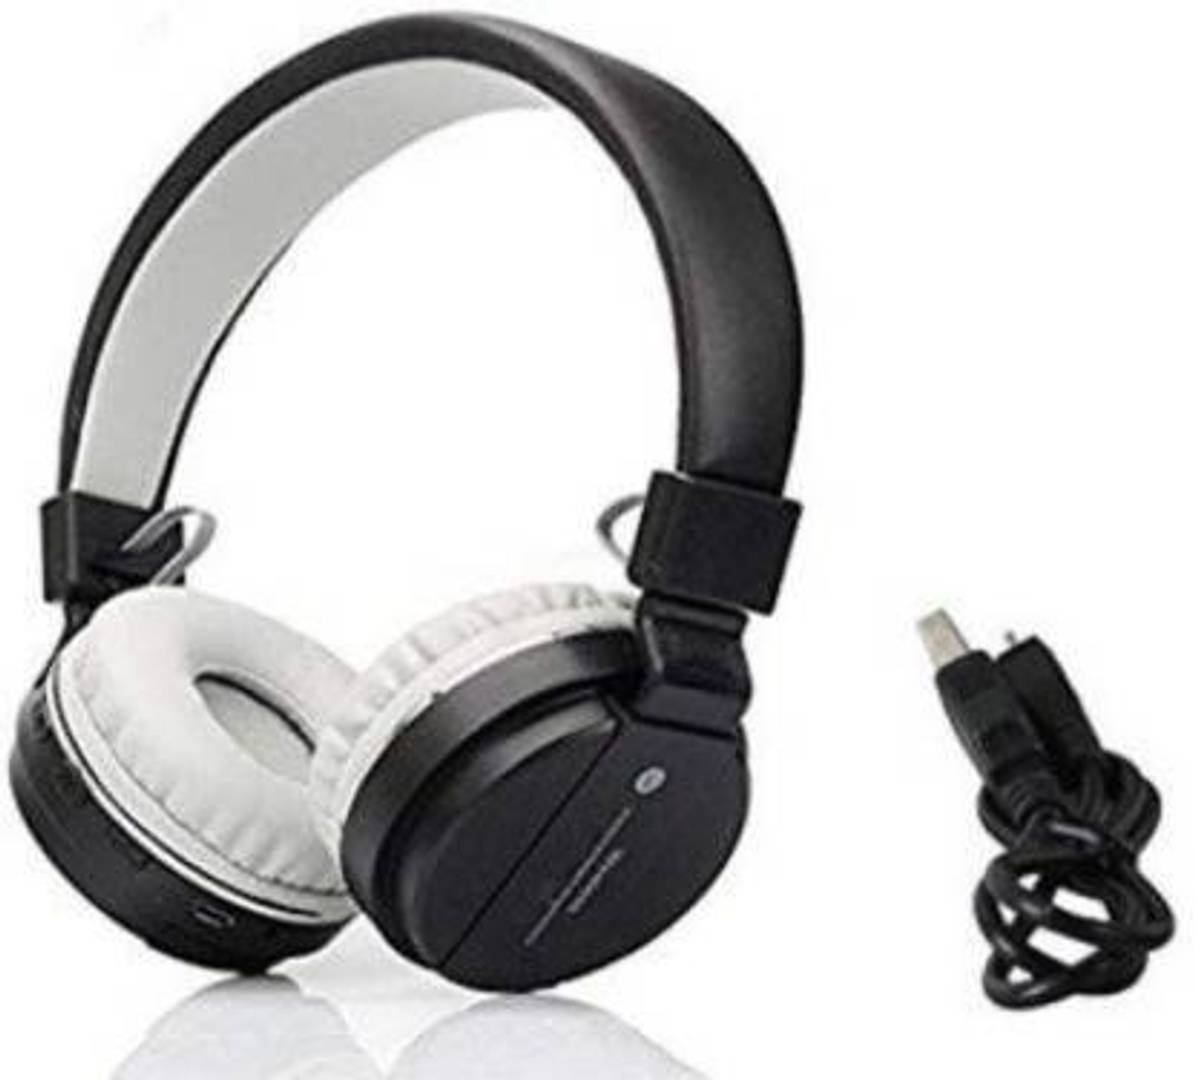 Vinimox SH12 wireless Bluetooth Headphone With FM and SD Card Slot with music and calling controls